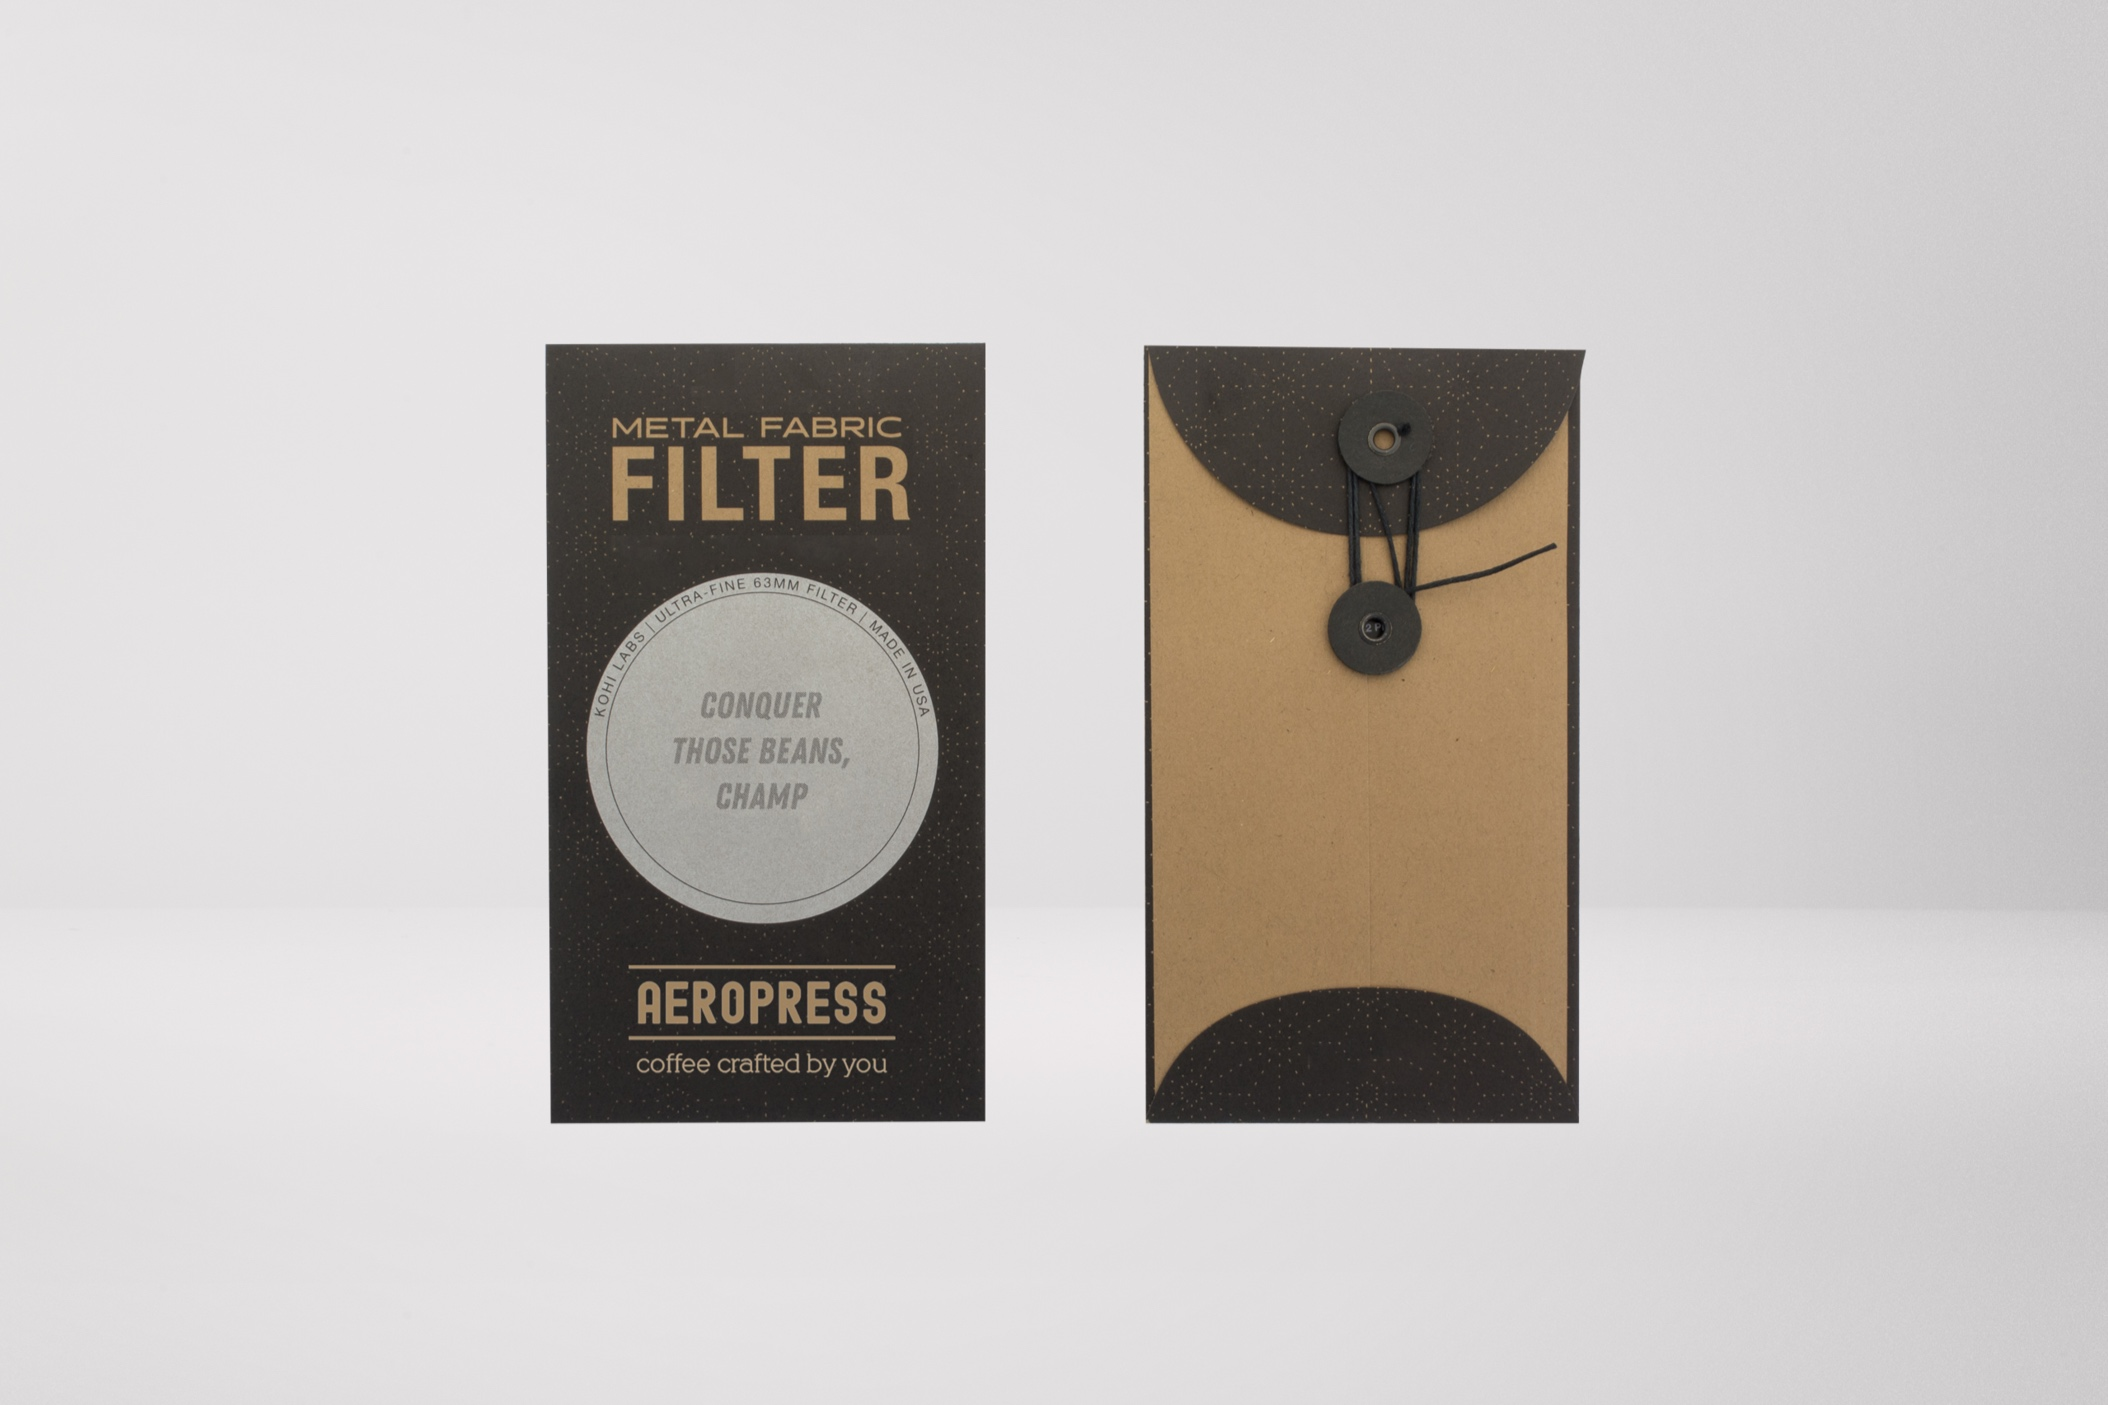 Aeropress currently doesn't sell their own paper filters, which is an oversight easily remedied and customized.